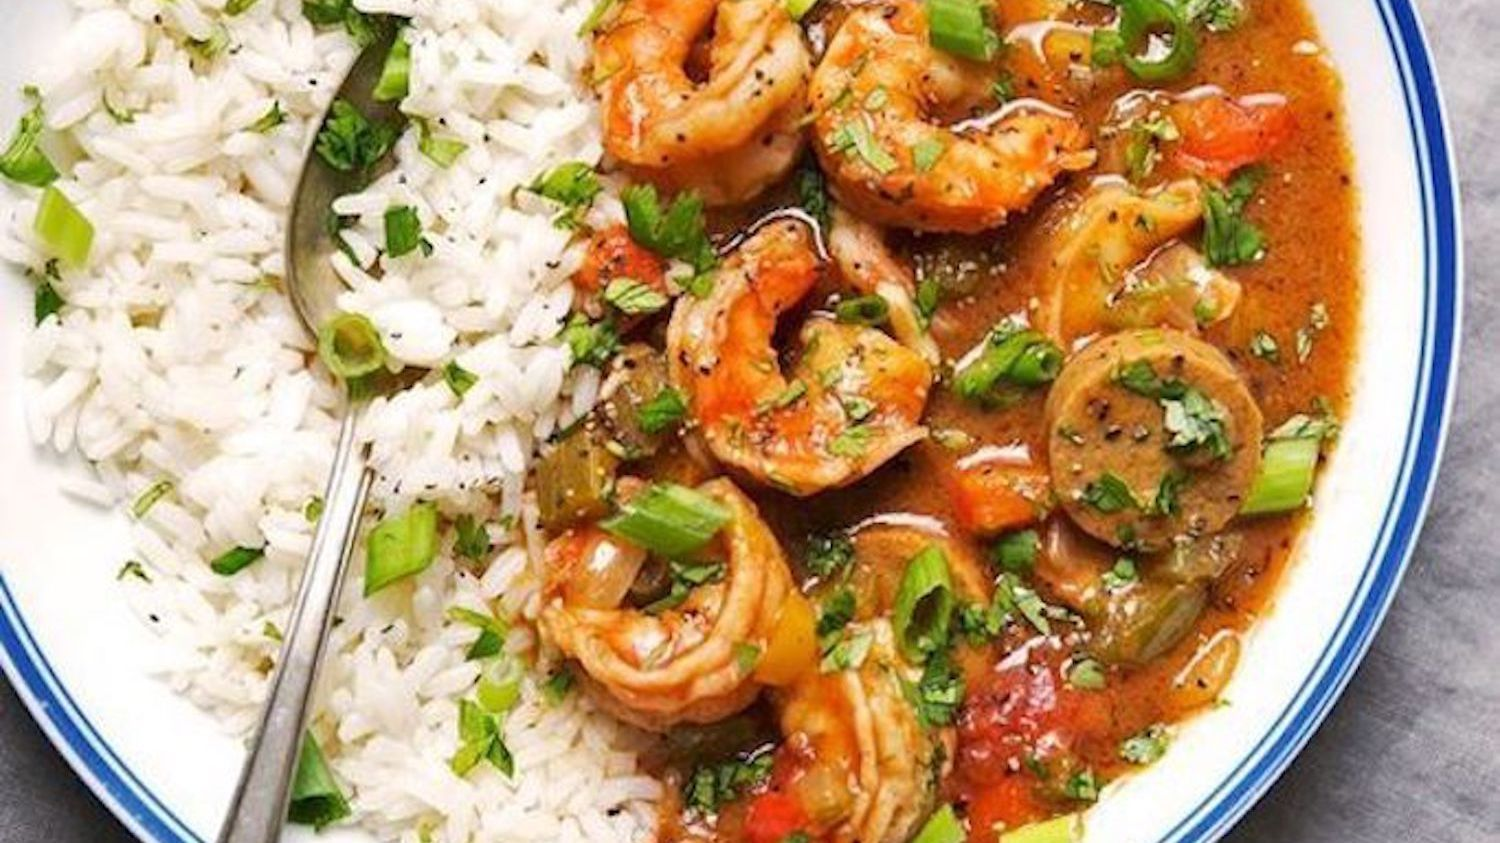 Chef Richardi shares recipe for his spicy gumbo